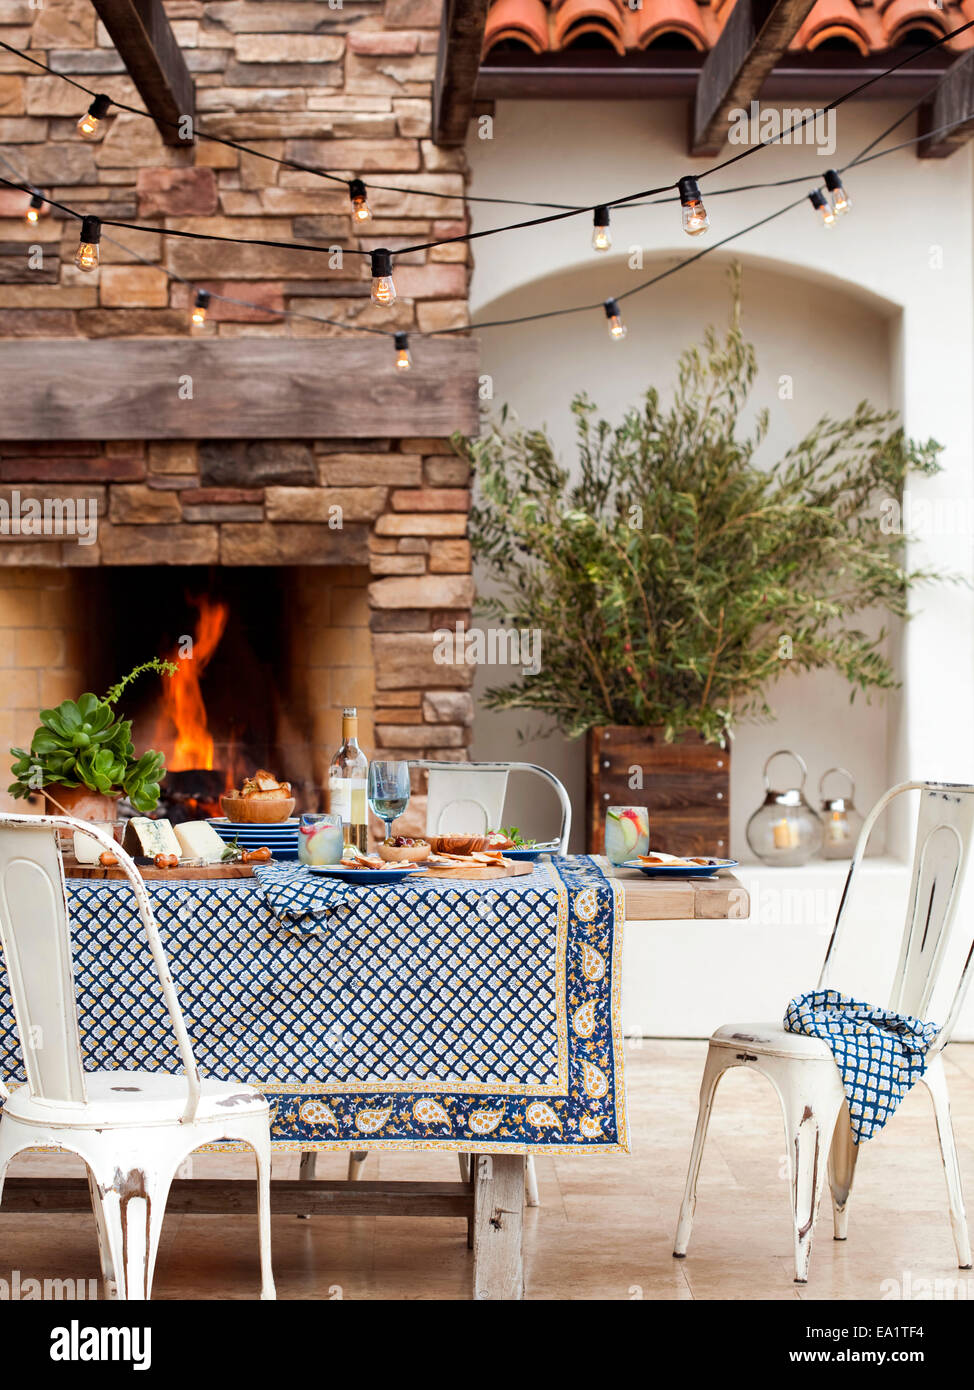 Outdoor dining scene with set table and fire - Stock Image